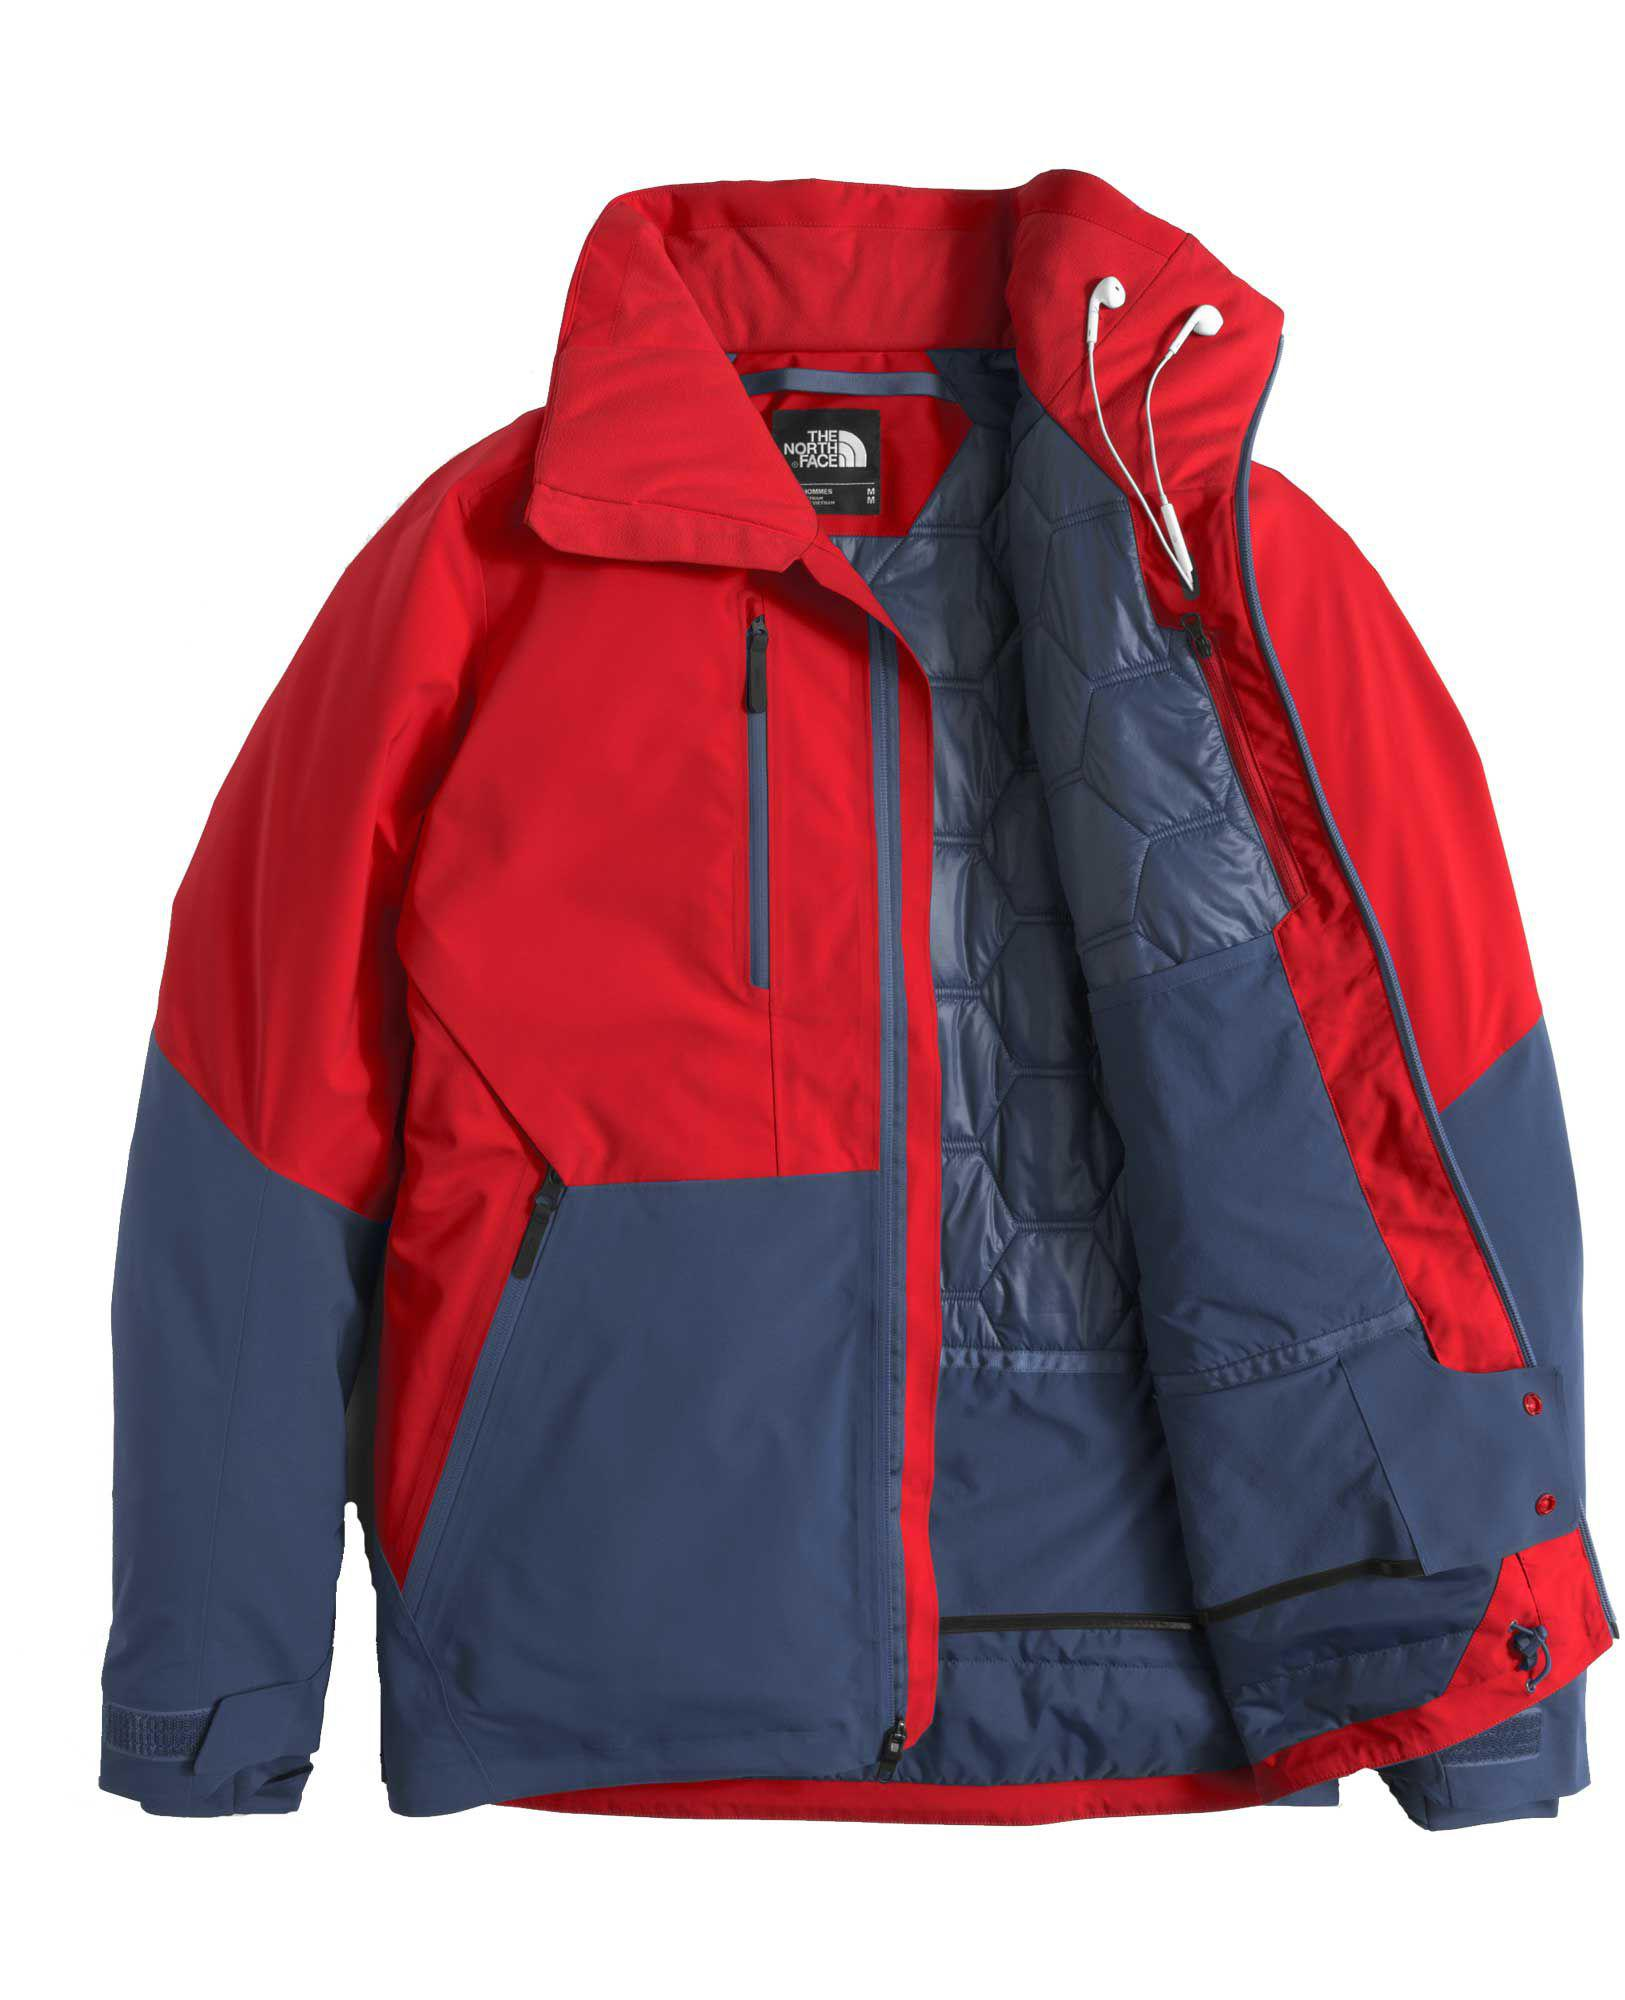 0060a0edb89b Lyst - The North Face Anonym Insulated Jacket in Red for Men